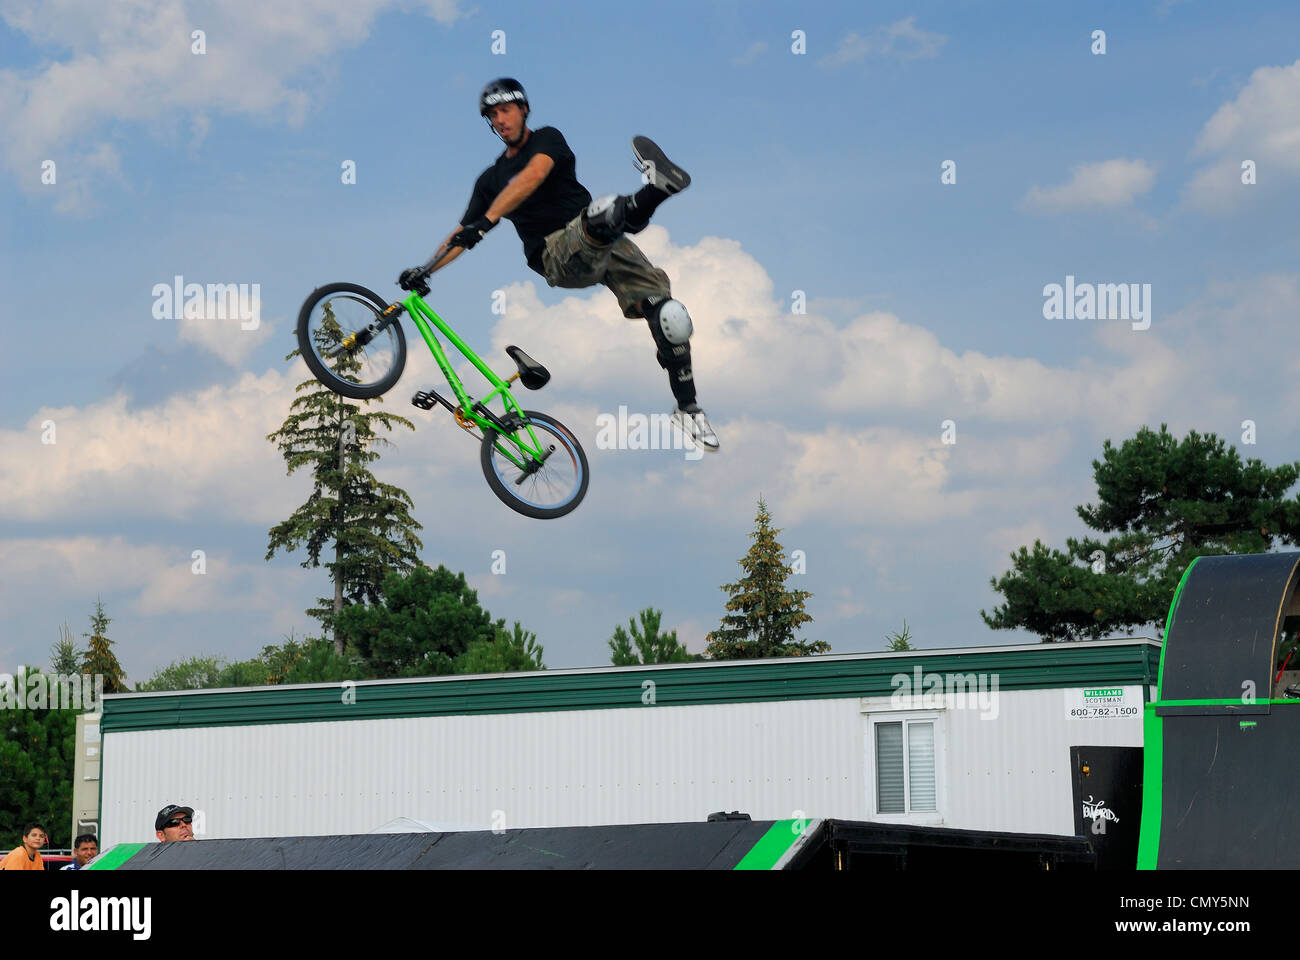 Extreme Stunt rider flying high in the air at the SuperEX in Ottawa - Stock Image